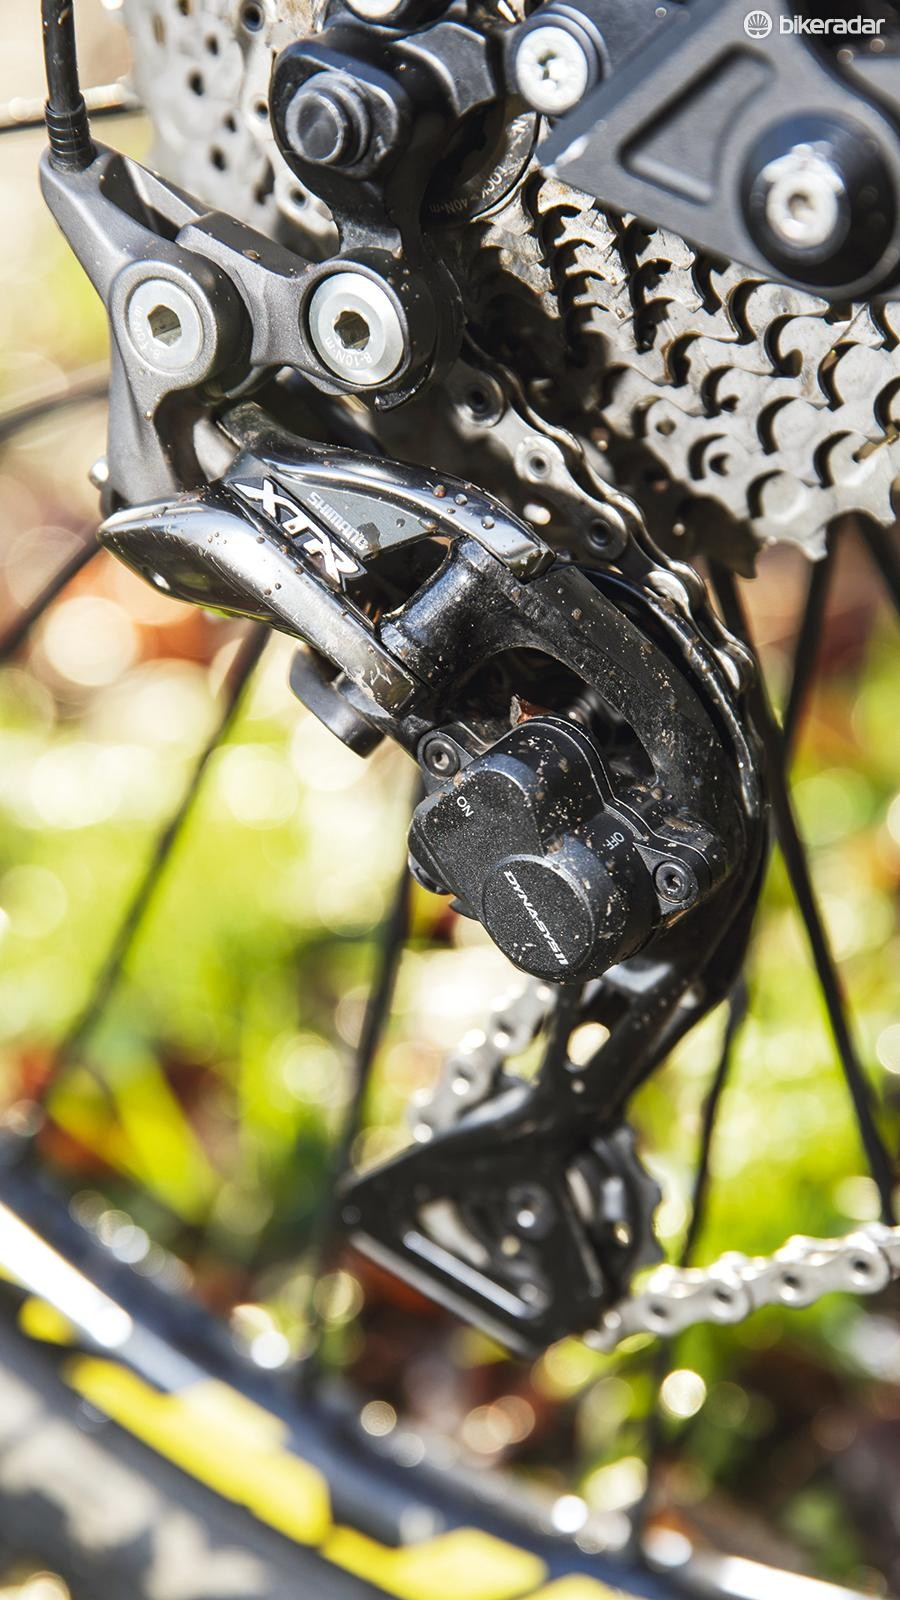 Shimano XTR gives a 40t crawler gear for getting up otherwise brutal climbs